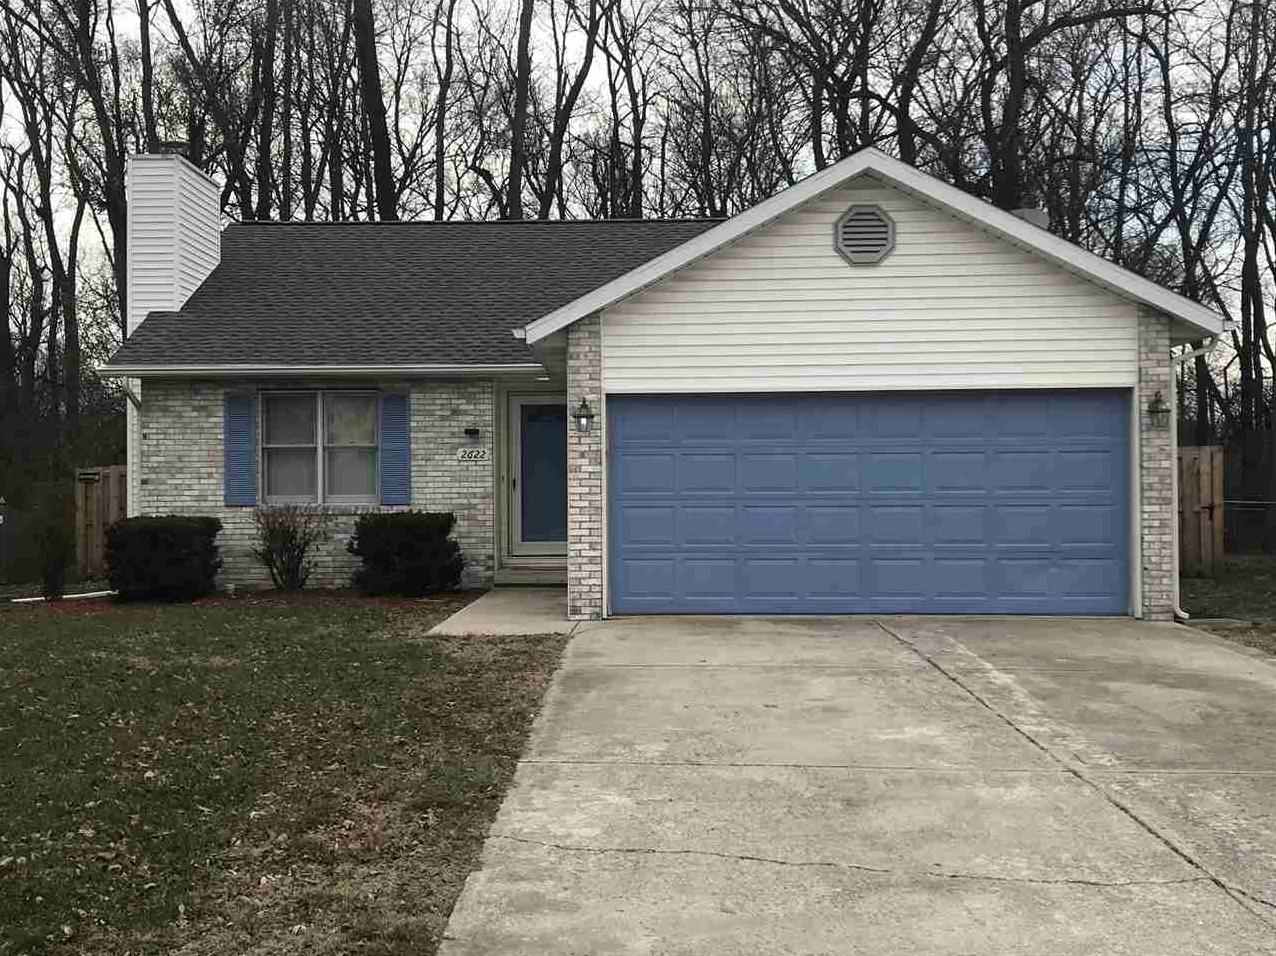 Photo of 2622 Kings Court Terre Haute IN 47802